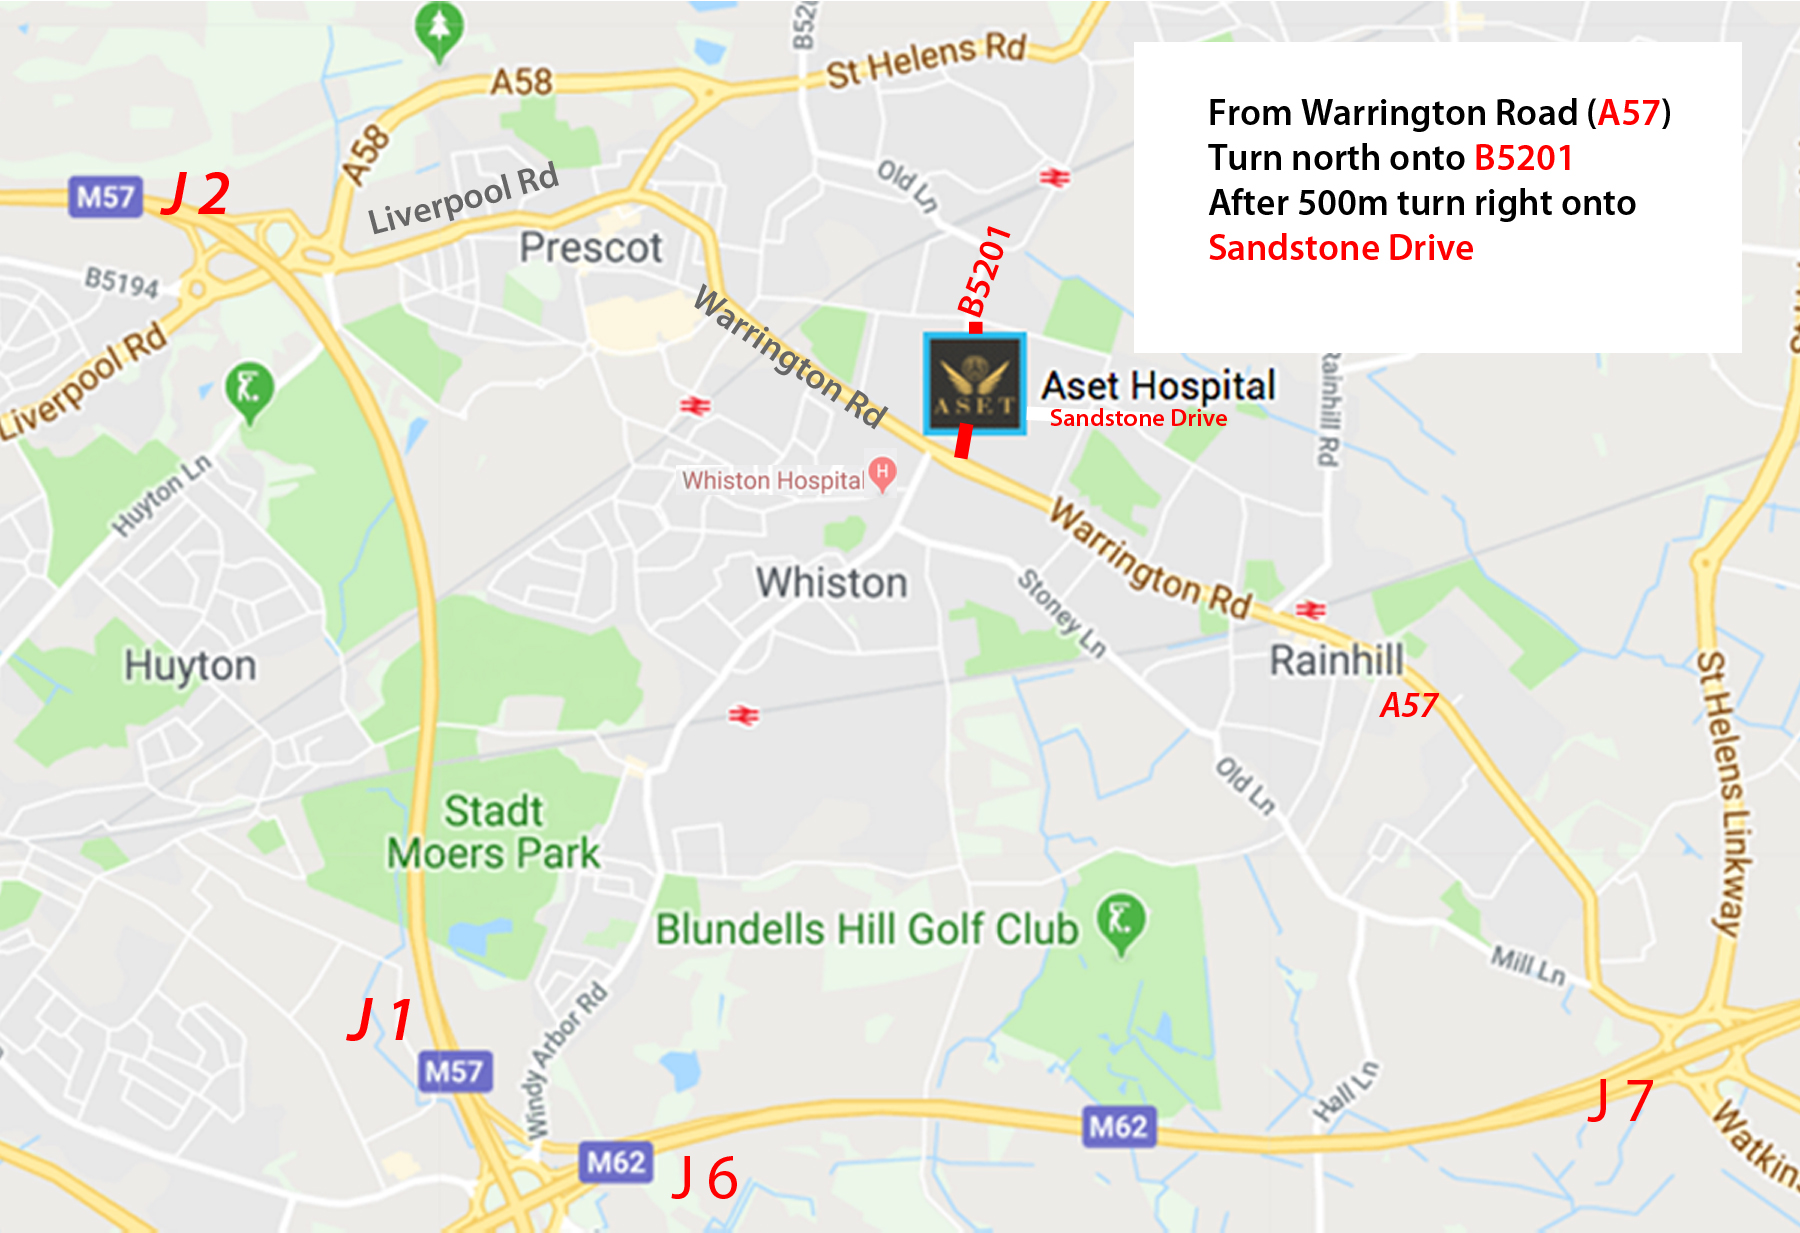 LOCATION MAP FOR aSET hospital cosmetic surgery hospital